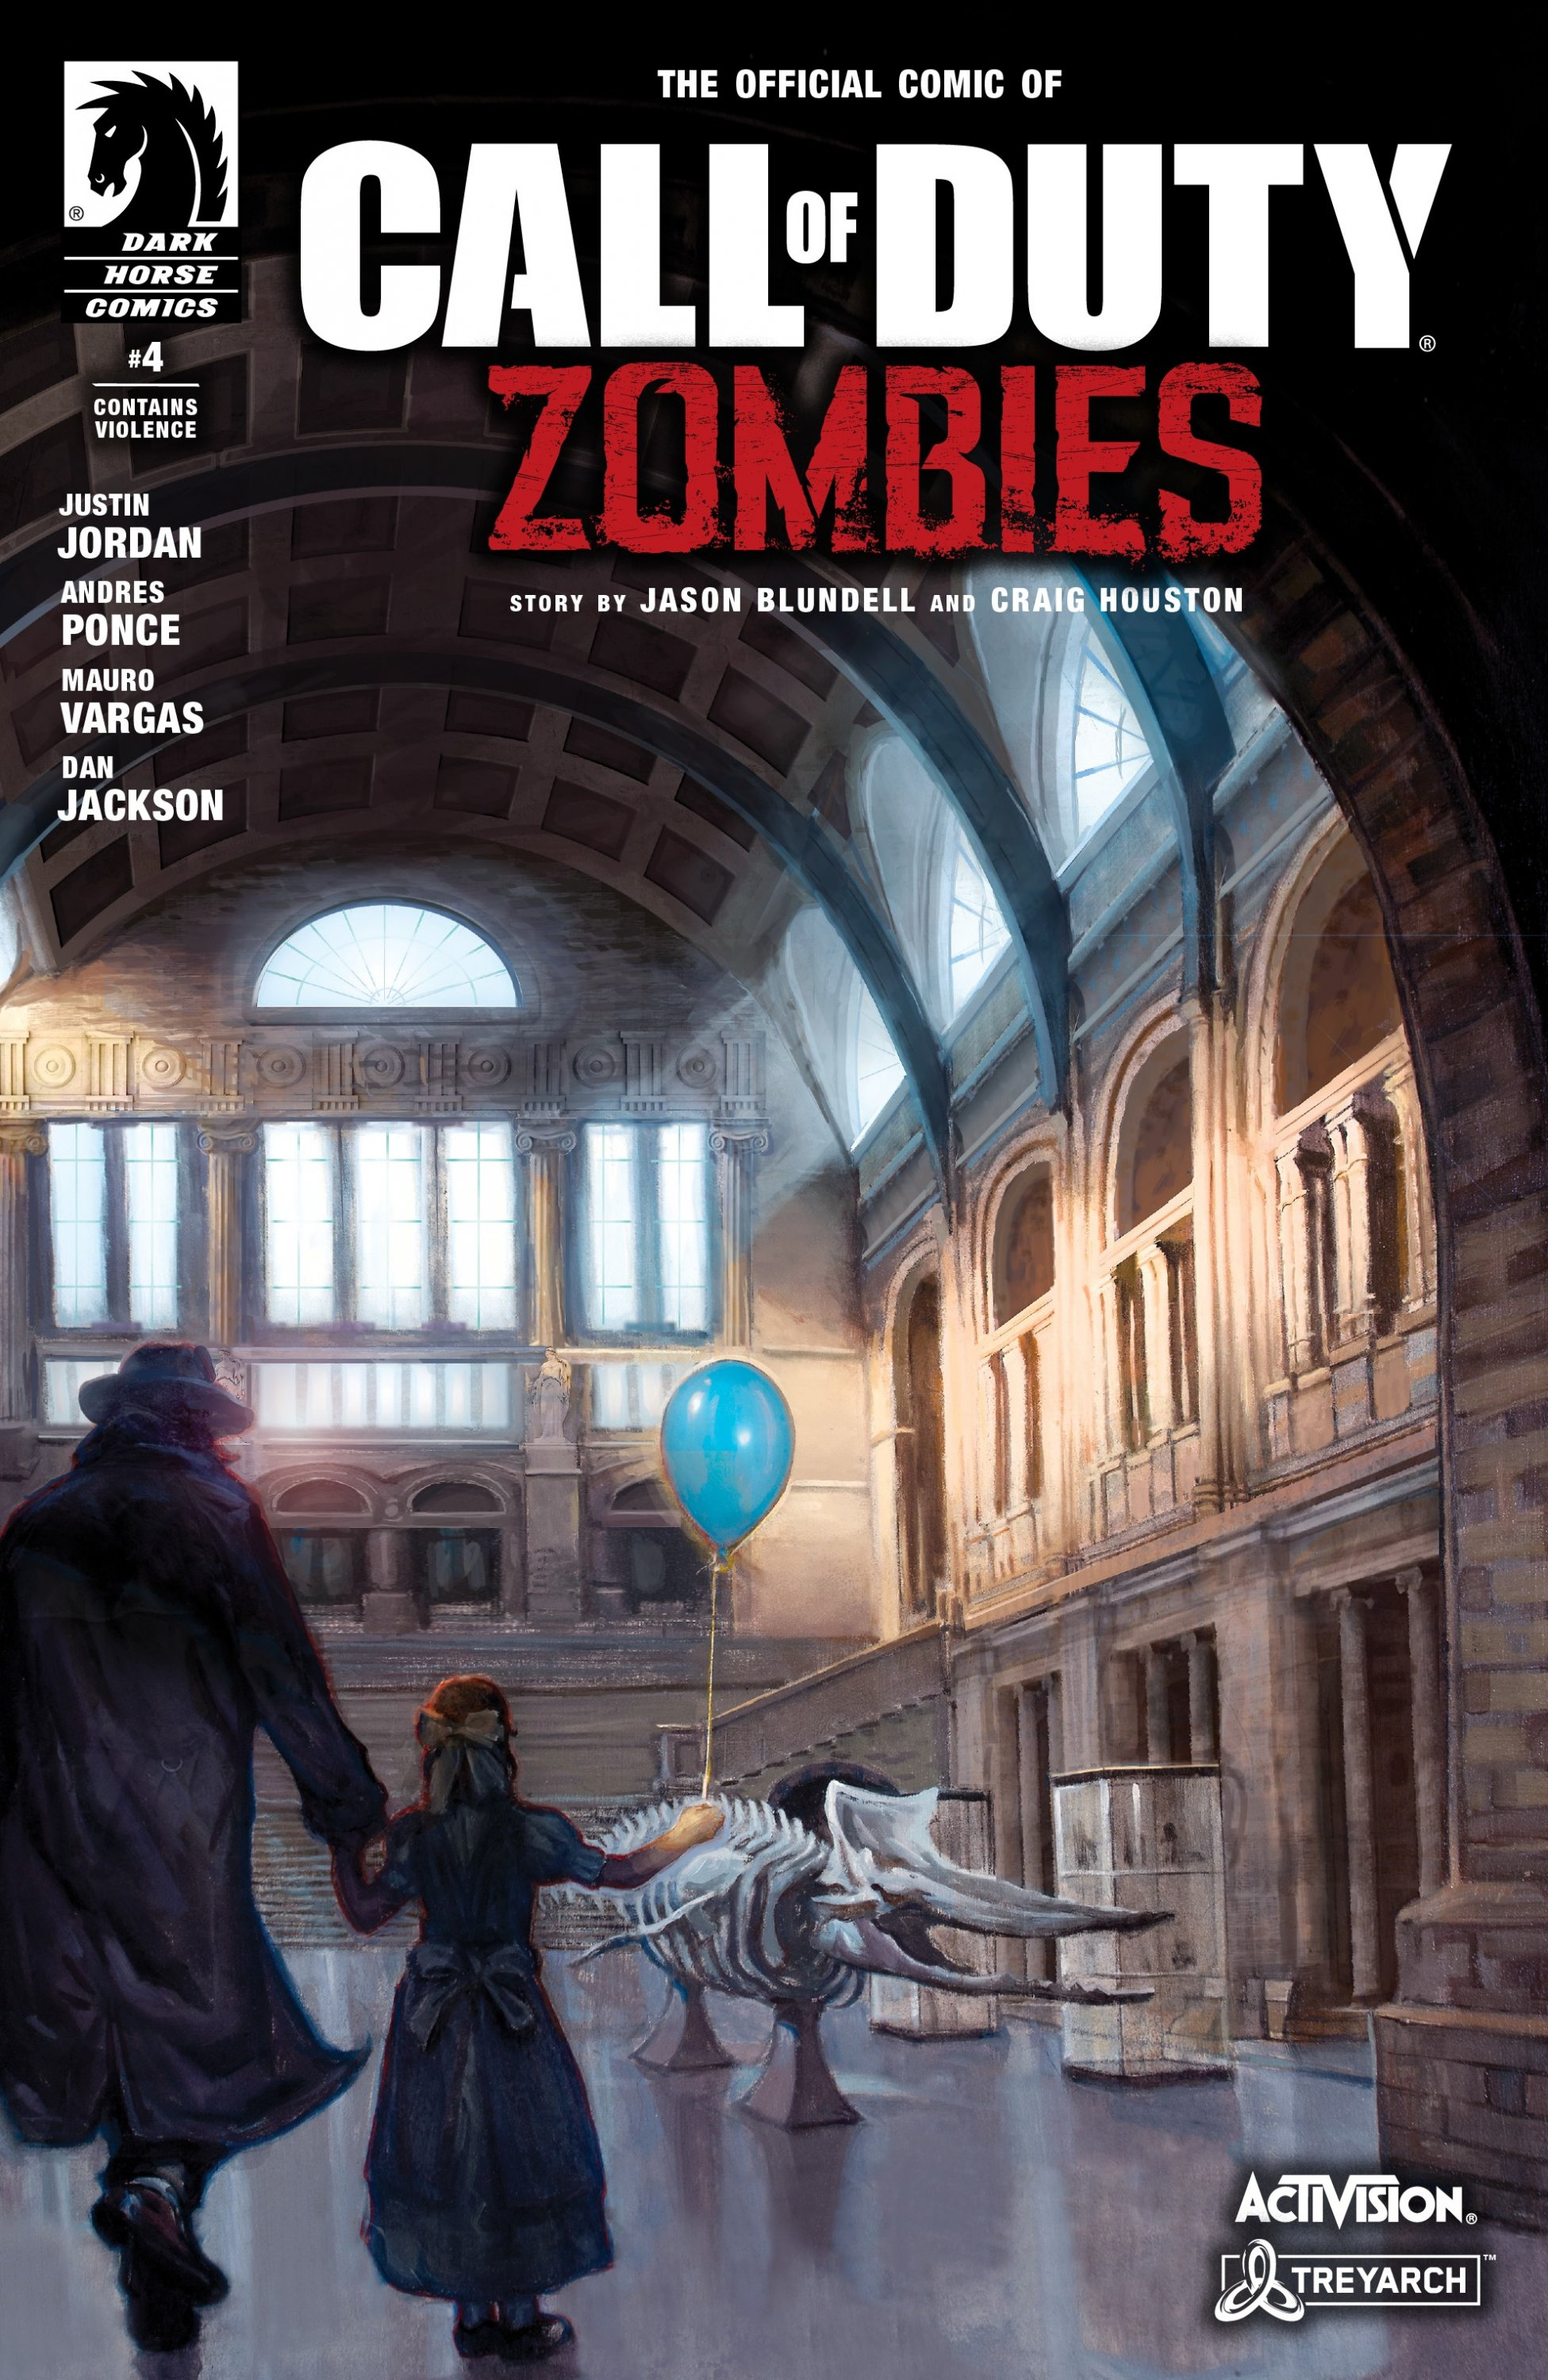 Call of Duty - Zombies Vol.2 04 (January 2019)